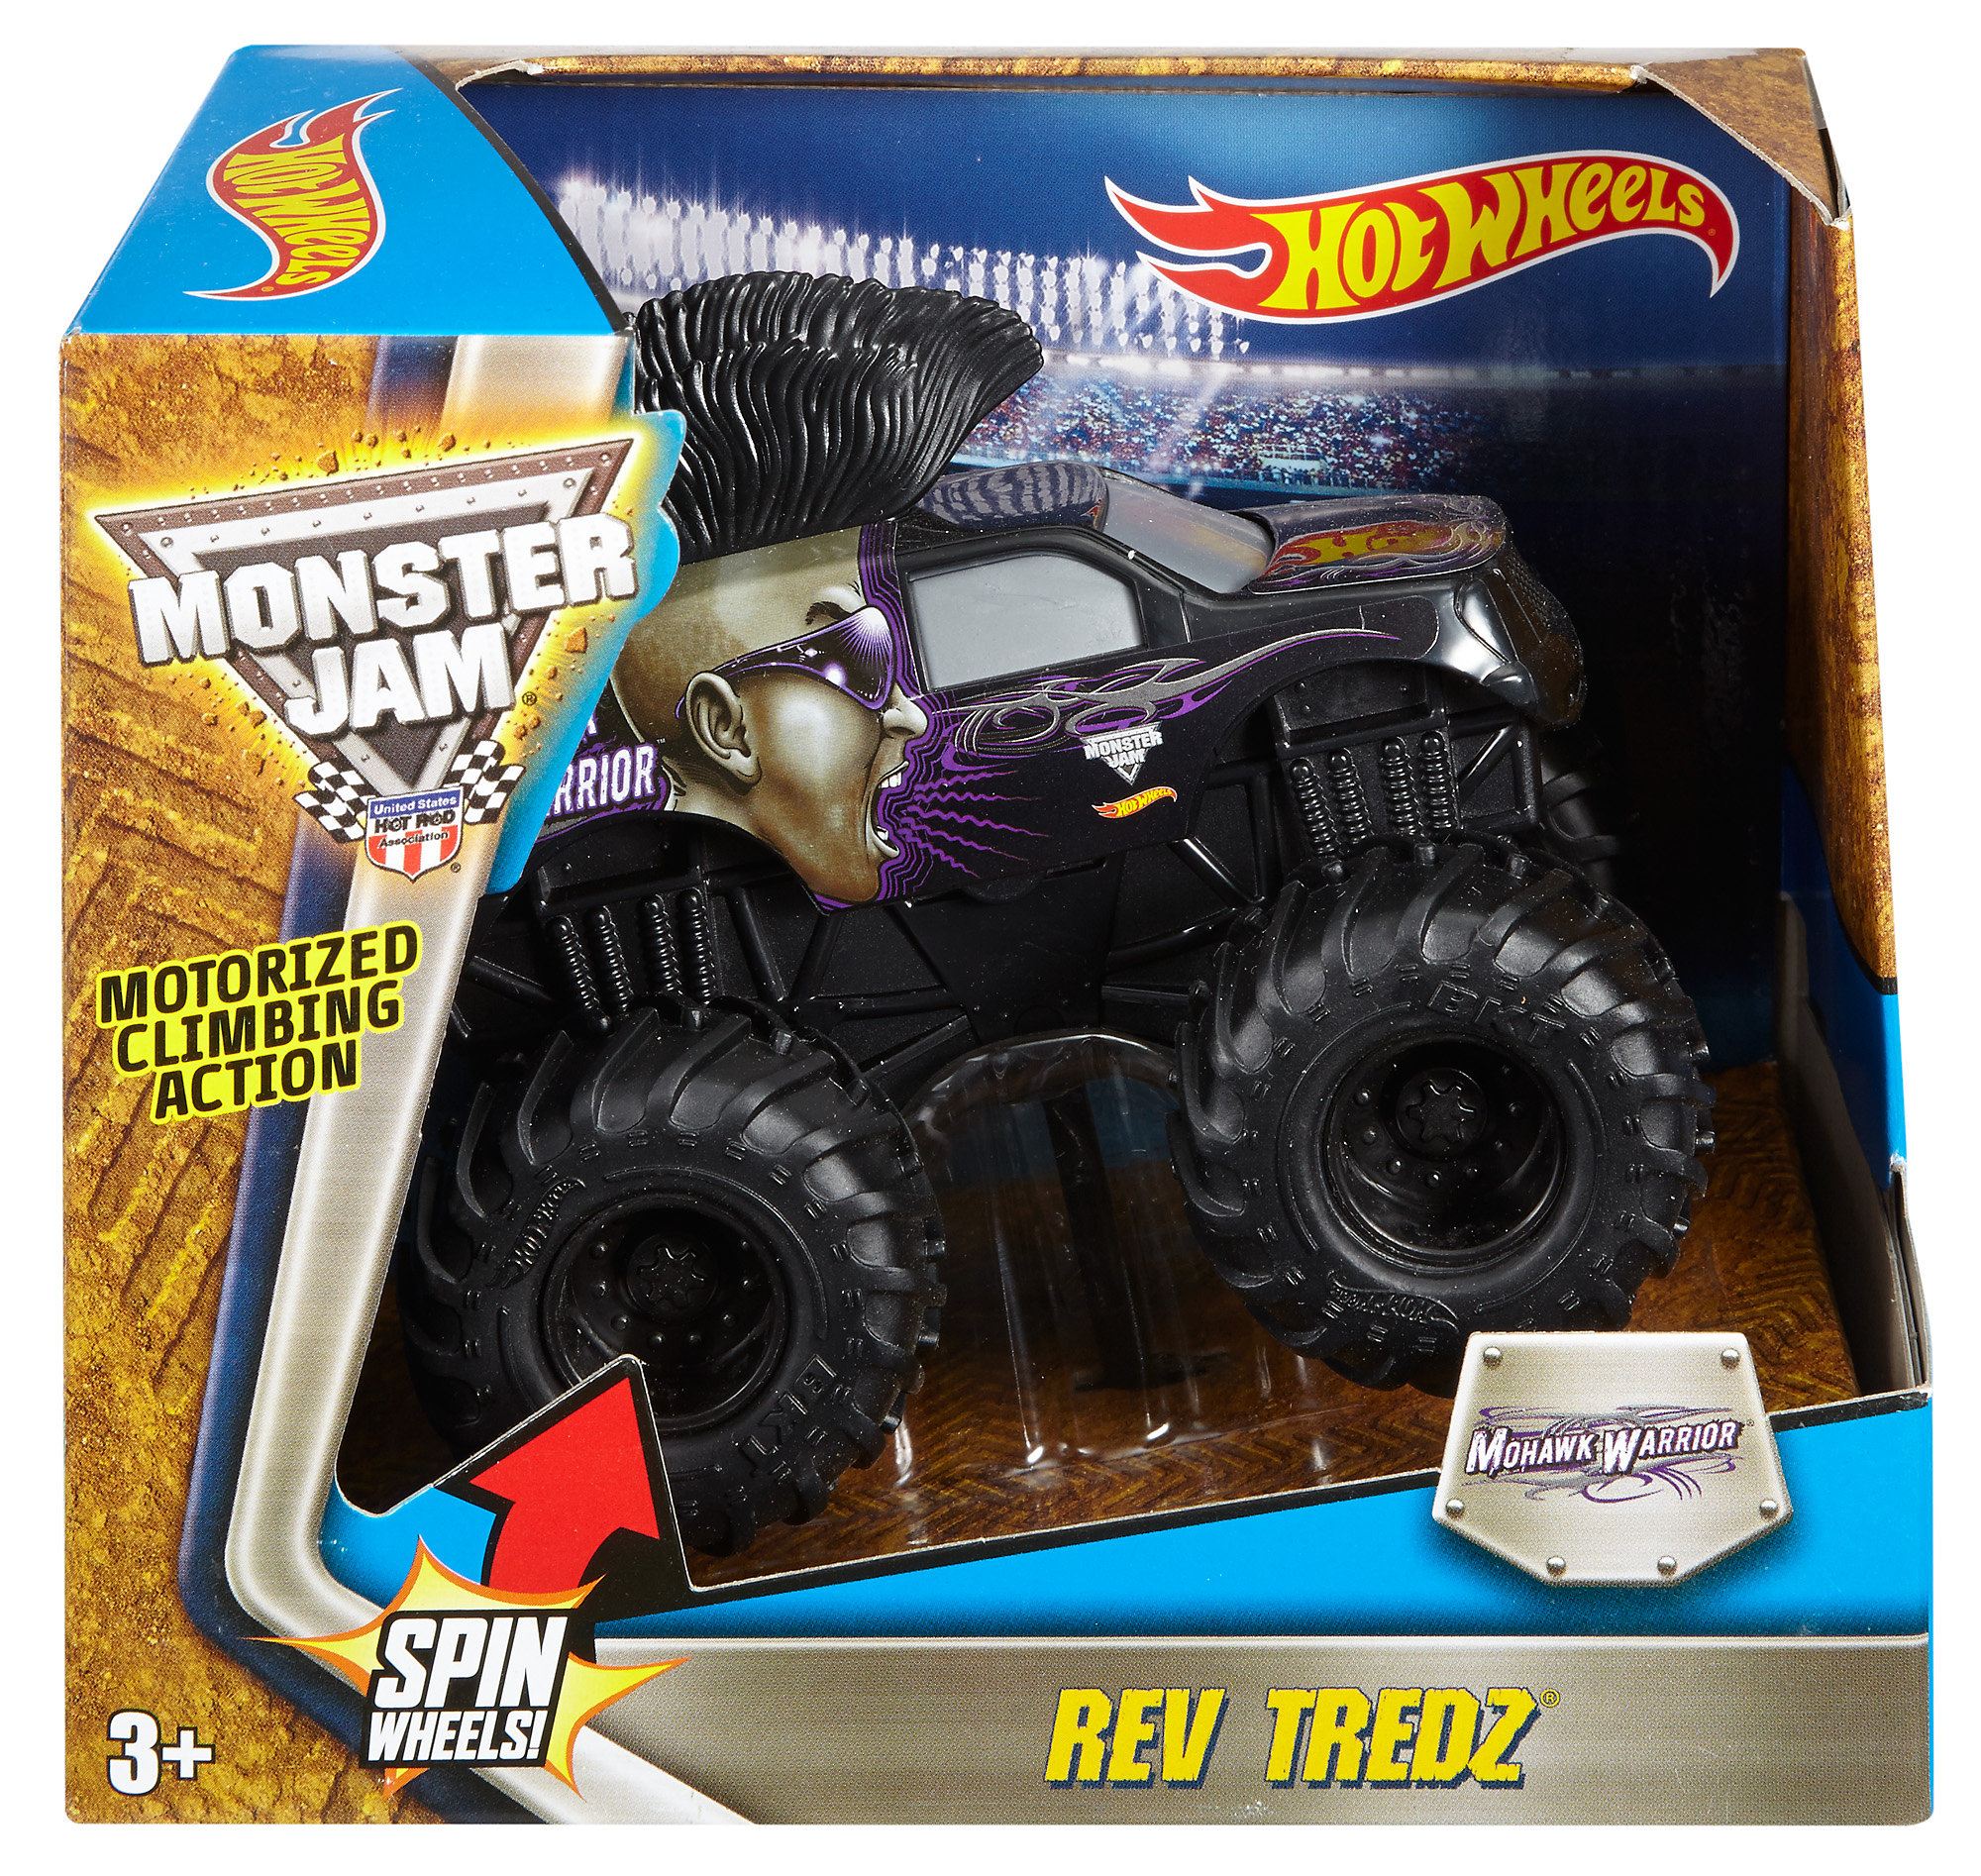 Hot Wheels Monster Jam Rev Tredz Mohawk Warrior Vehicle